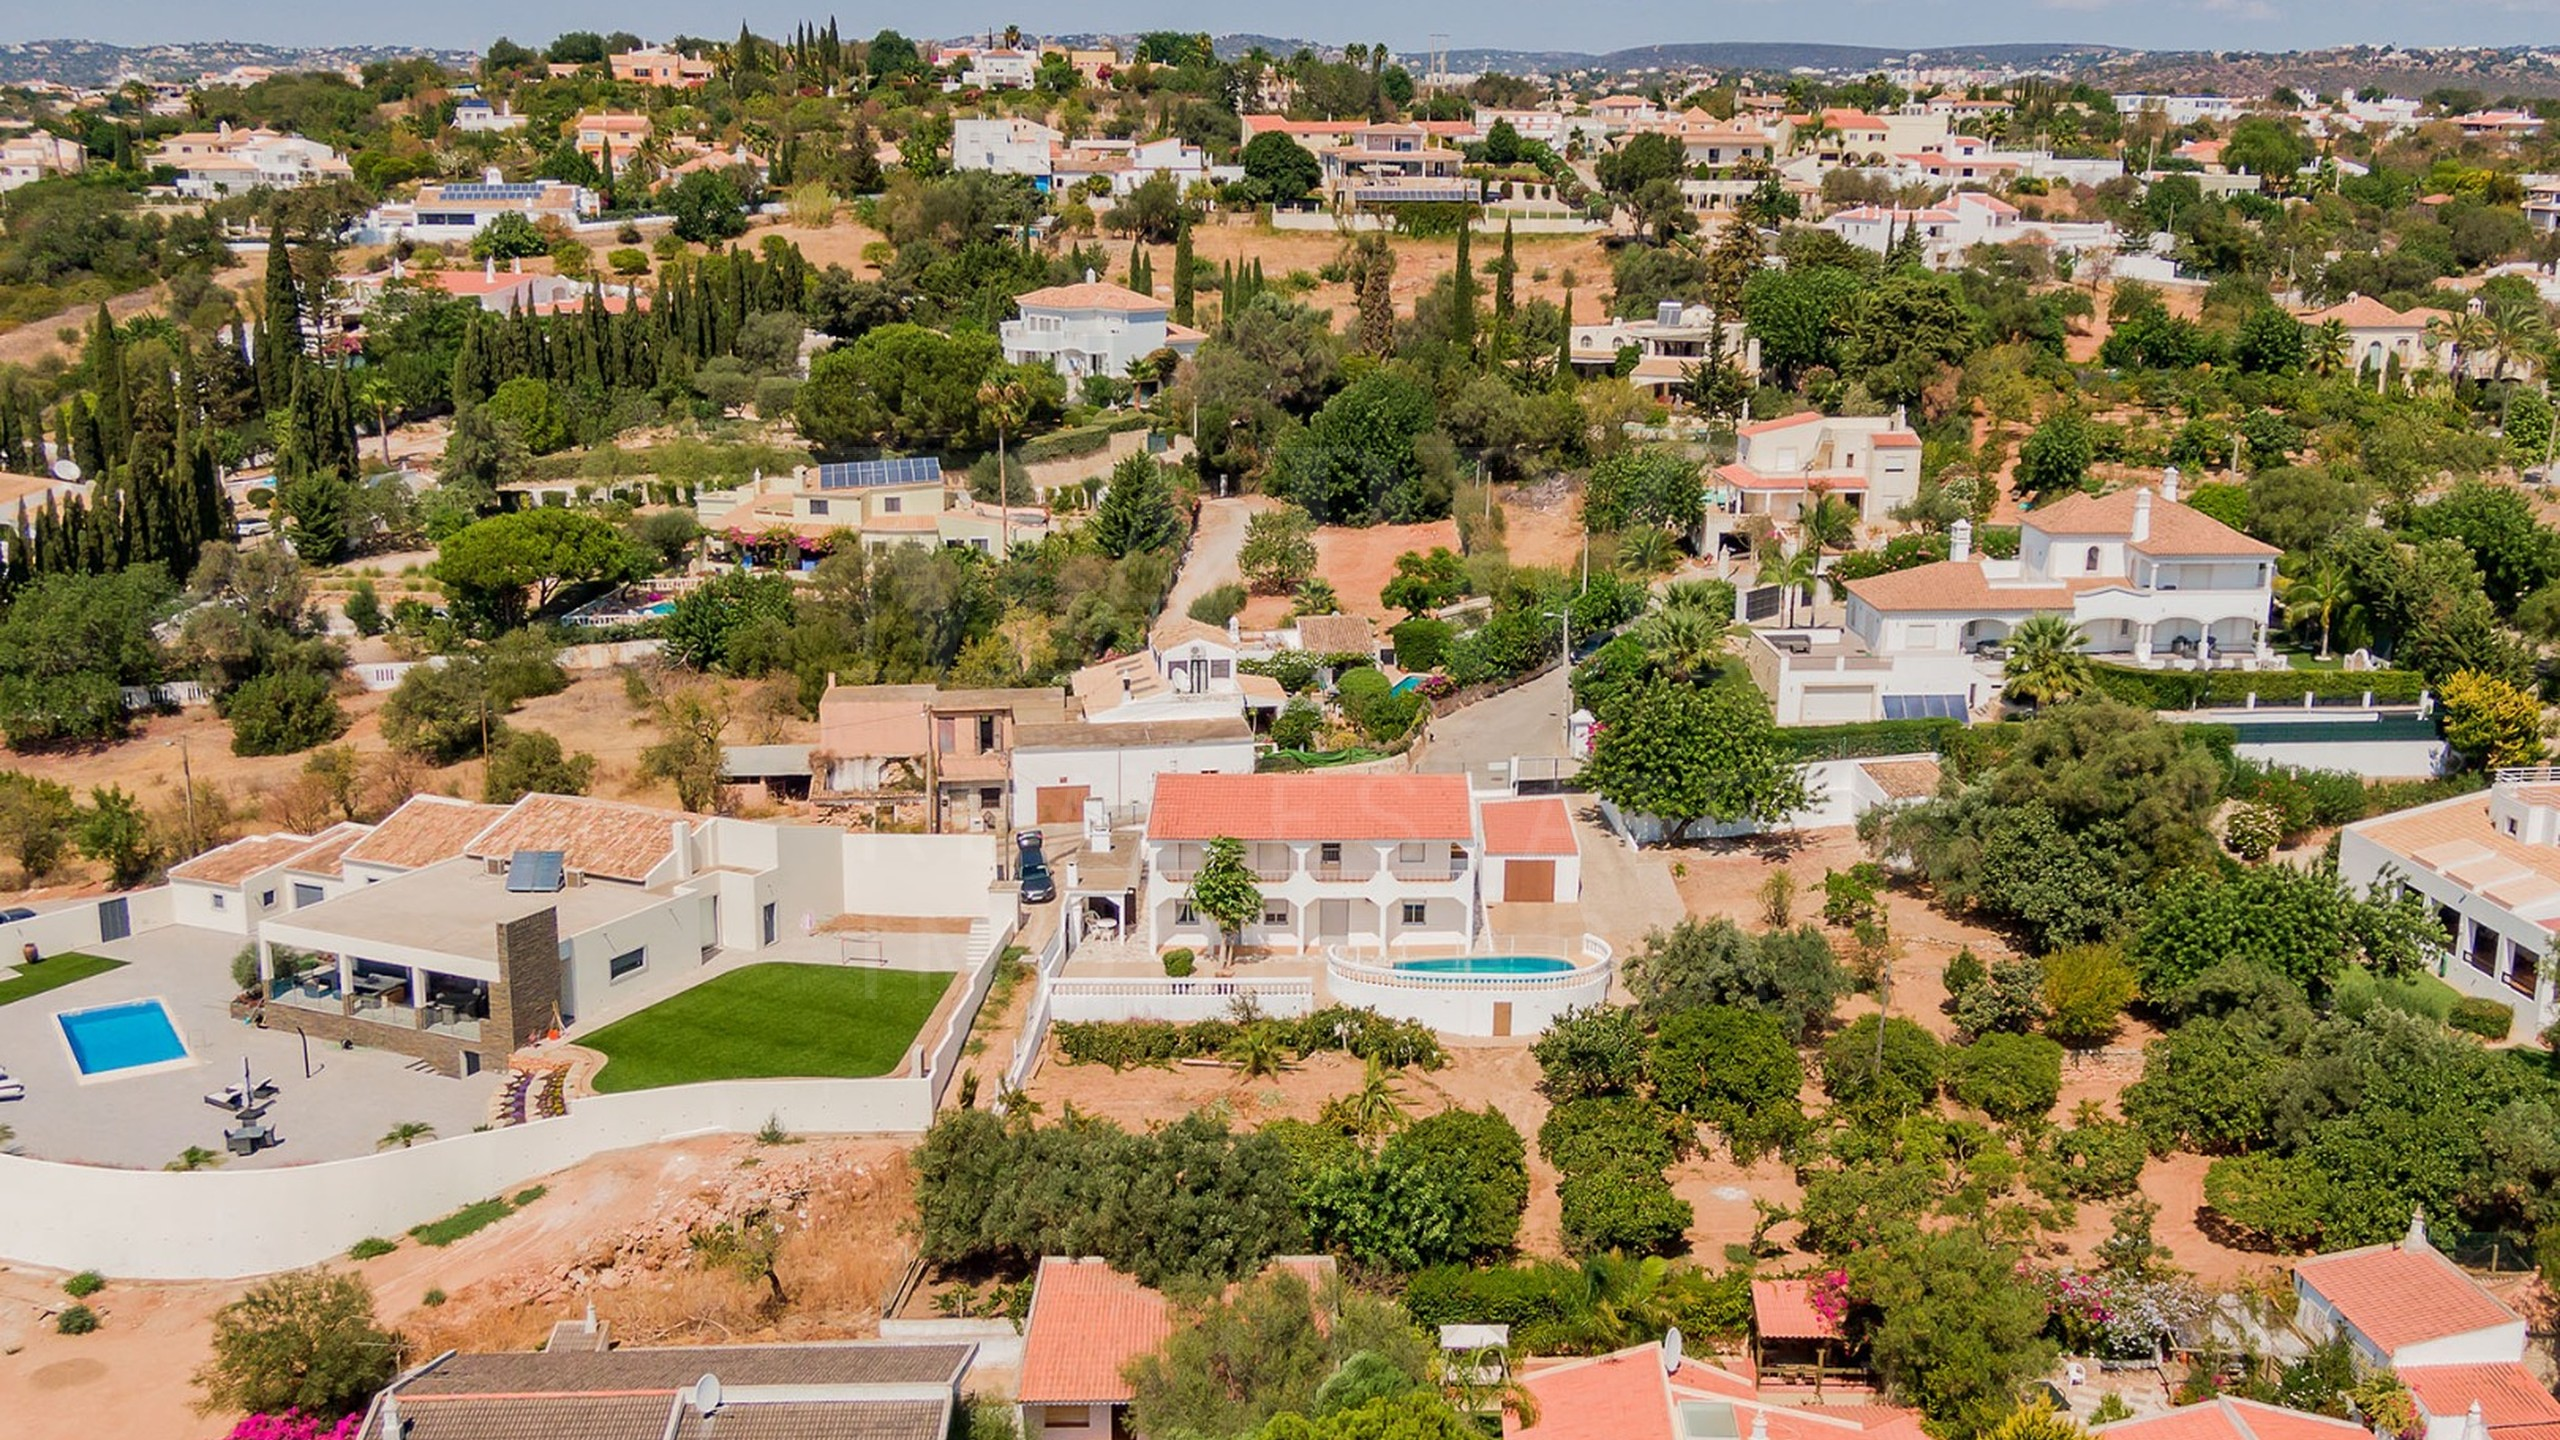 Villa for sale near Almancil, Algarve